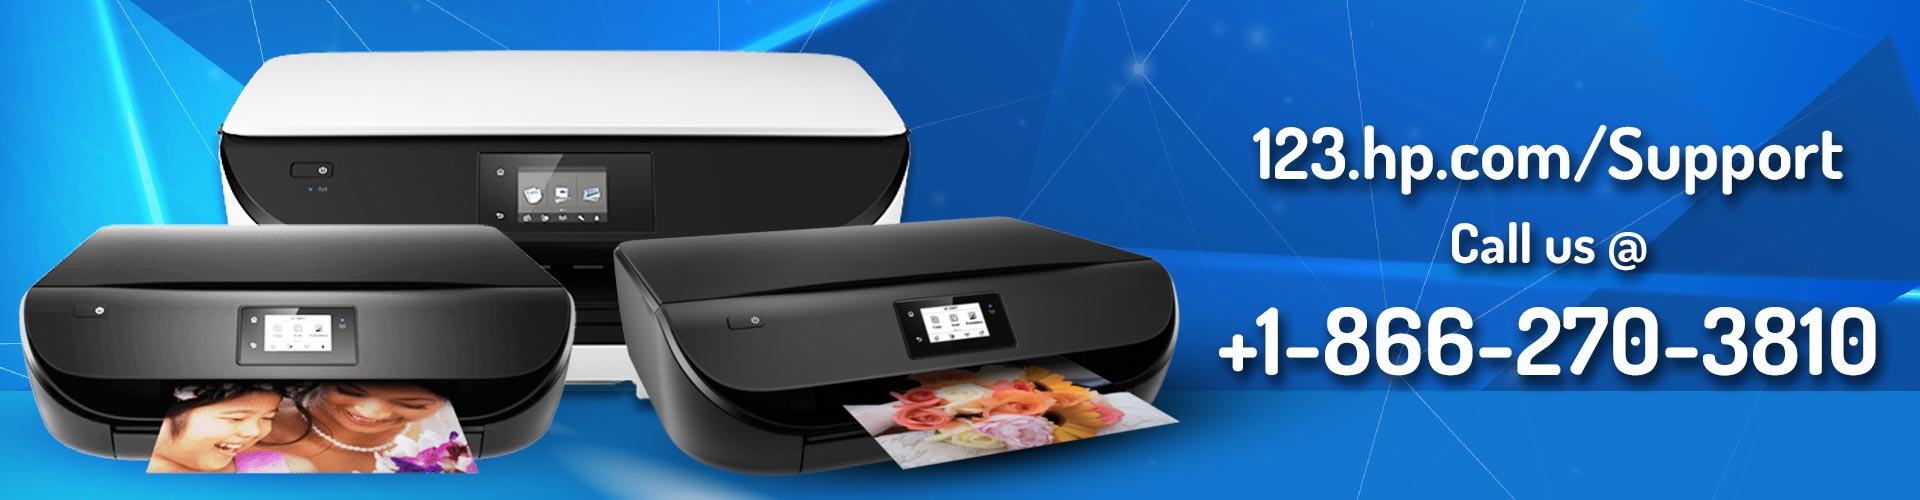 WHAT IS SPECIAL ABOUT AN ENVY PRINTER?